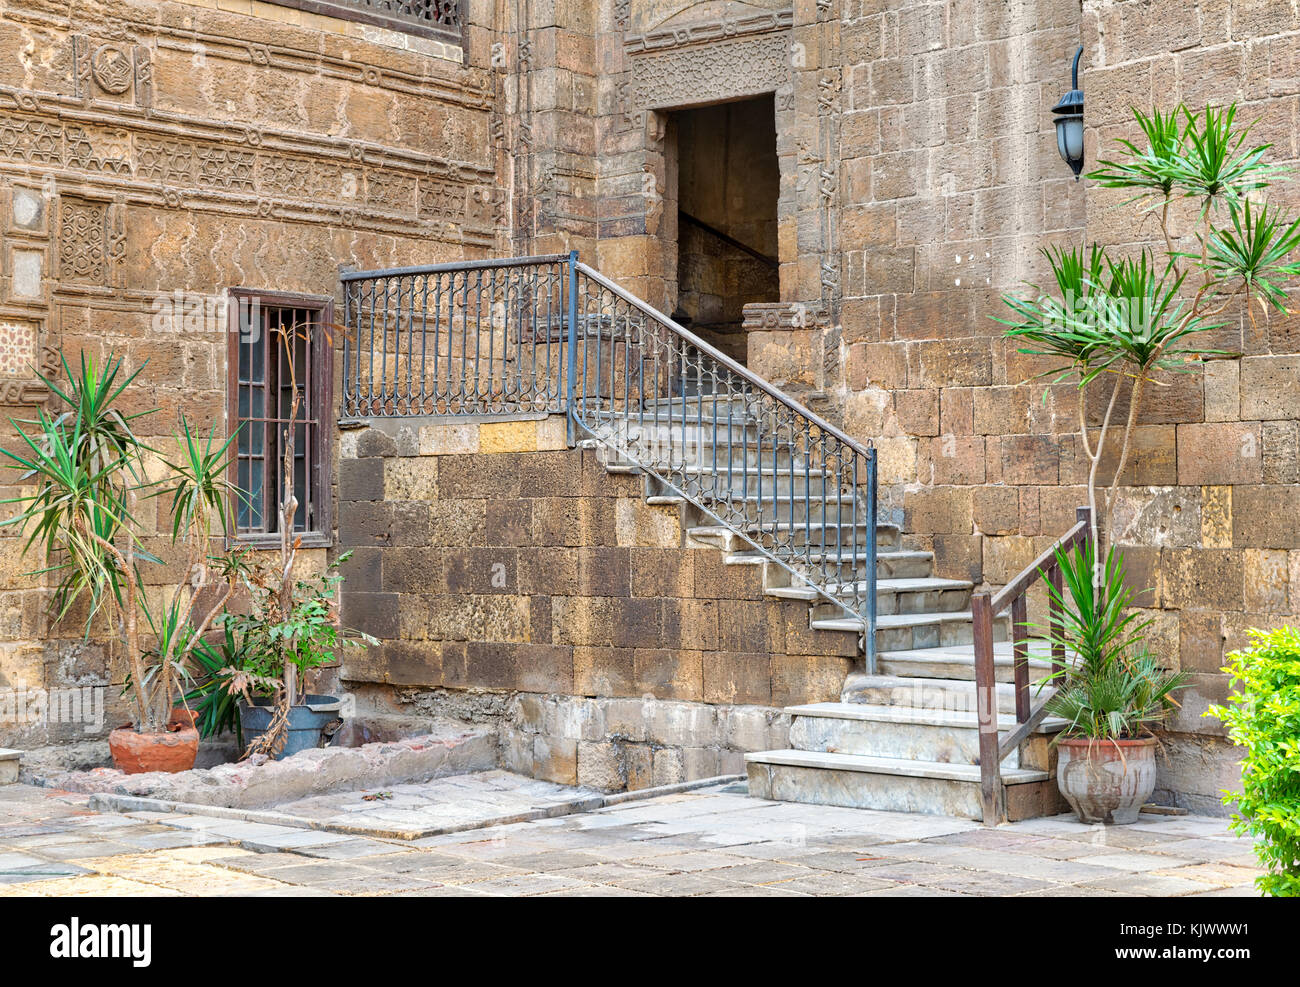 Courtyard of Prince Tax palace with staircase and entrance leading to the first floor located in Old Cairo, Egypt - Stock Image